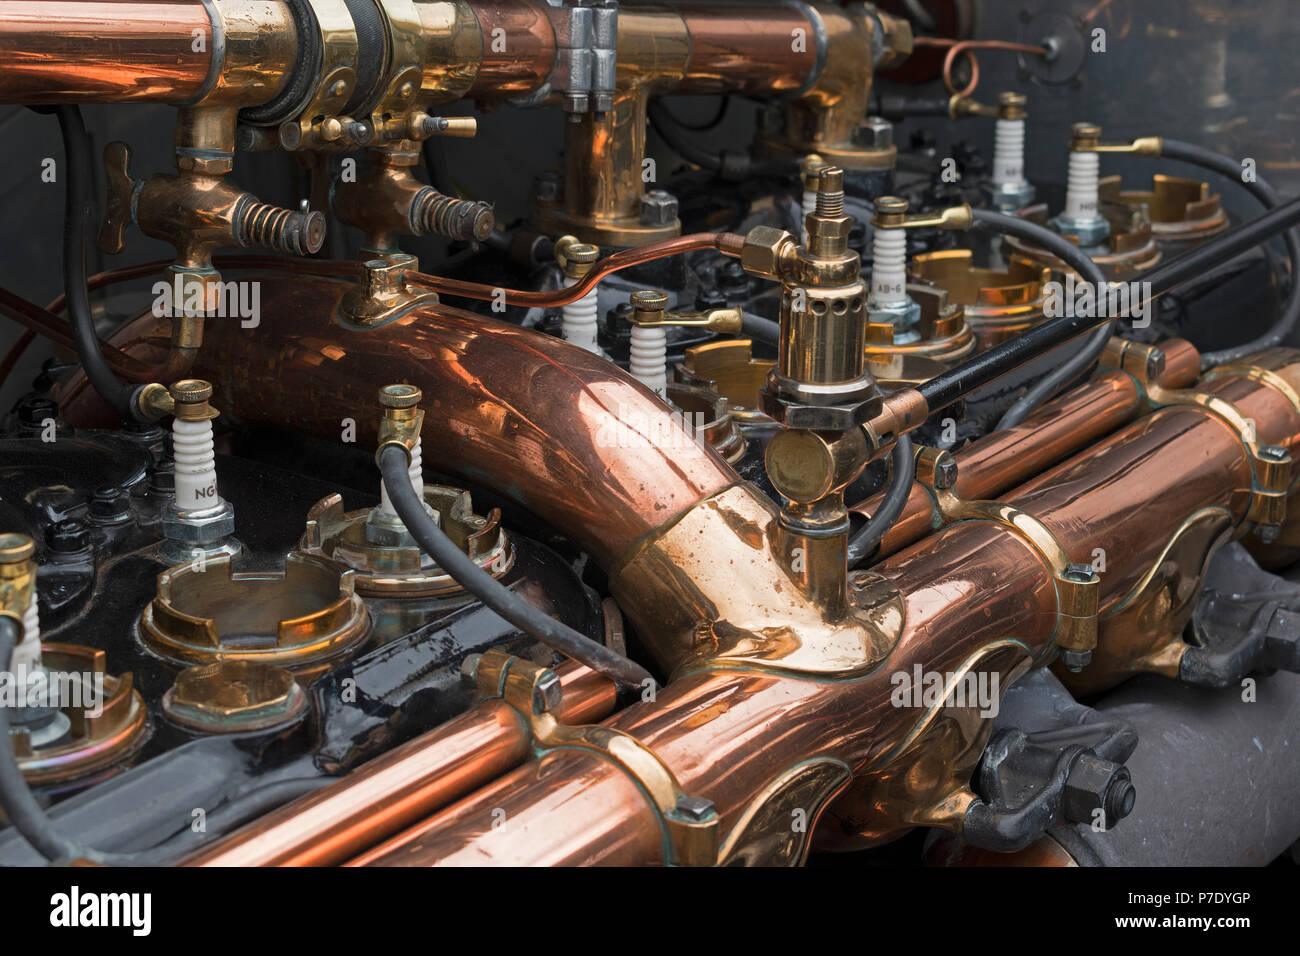 engine detail of a pre 1940 rolls royce silver ghost. - Stock Image